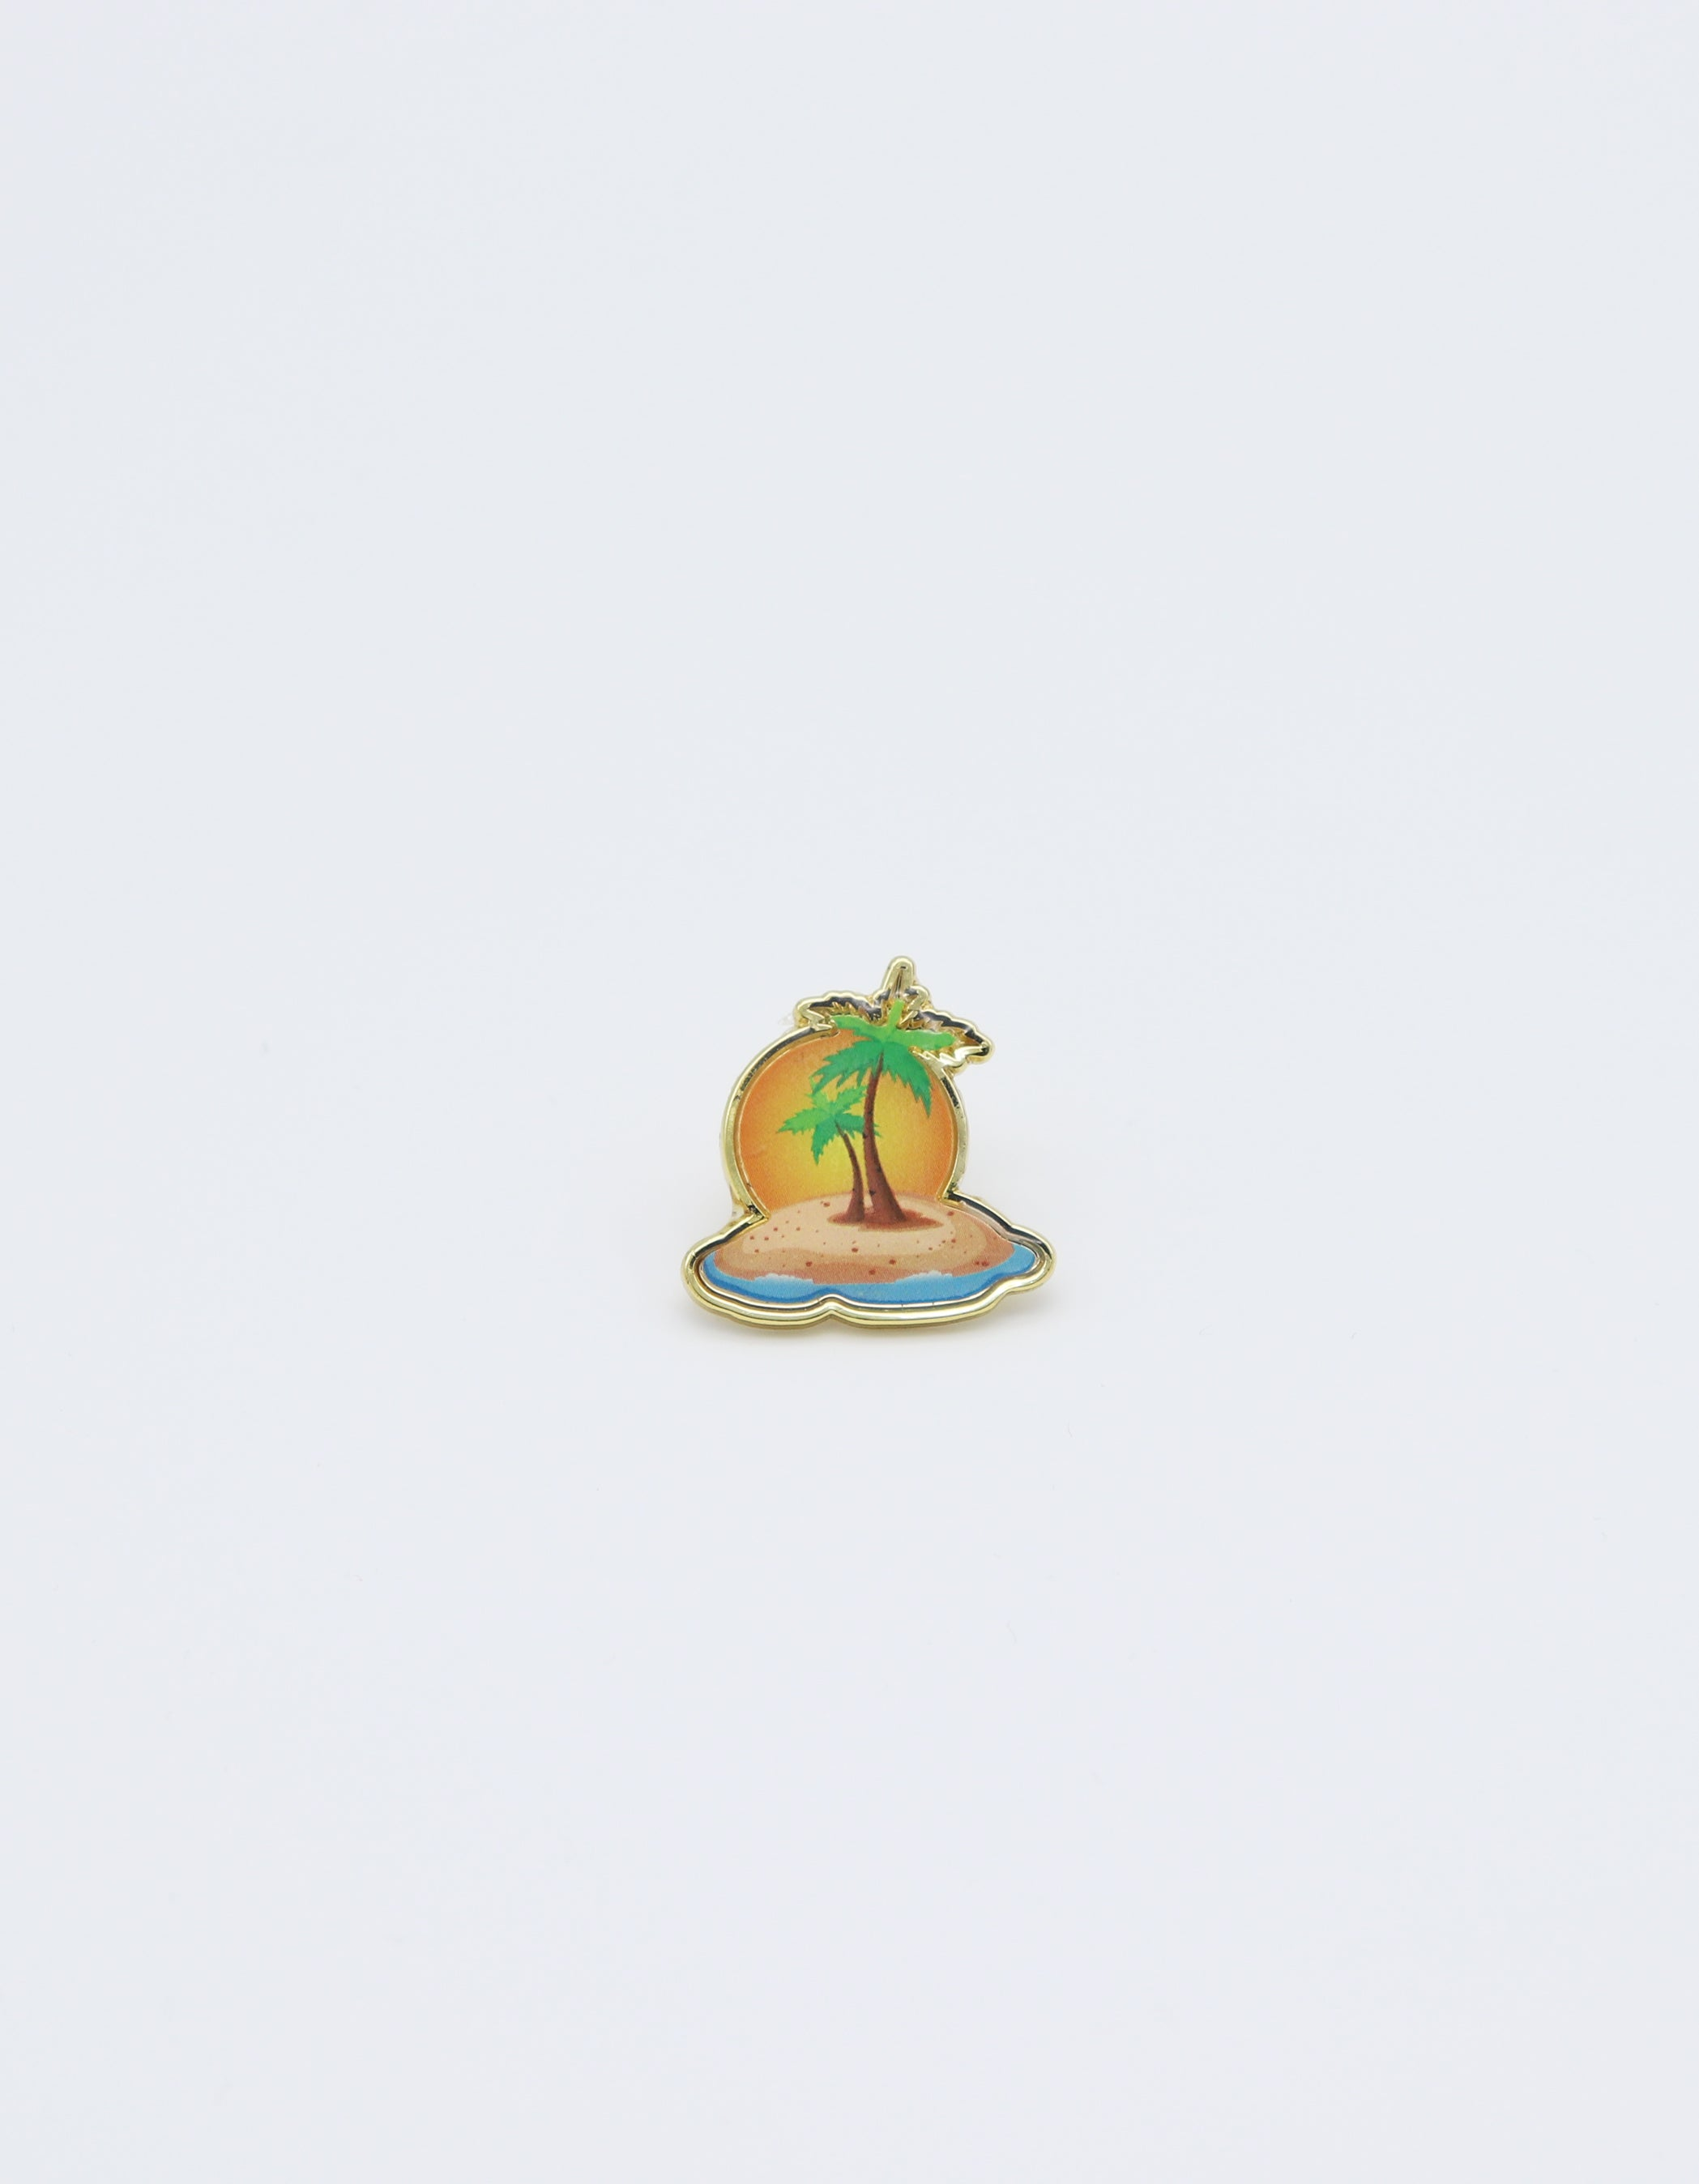 Tropical paradise Gold colored pin of island with palm tree surrounded by water in color gold sun, green palm trees, and sandy beach.